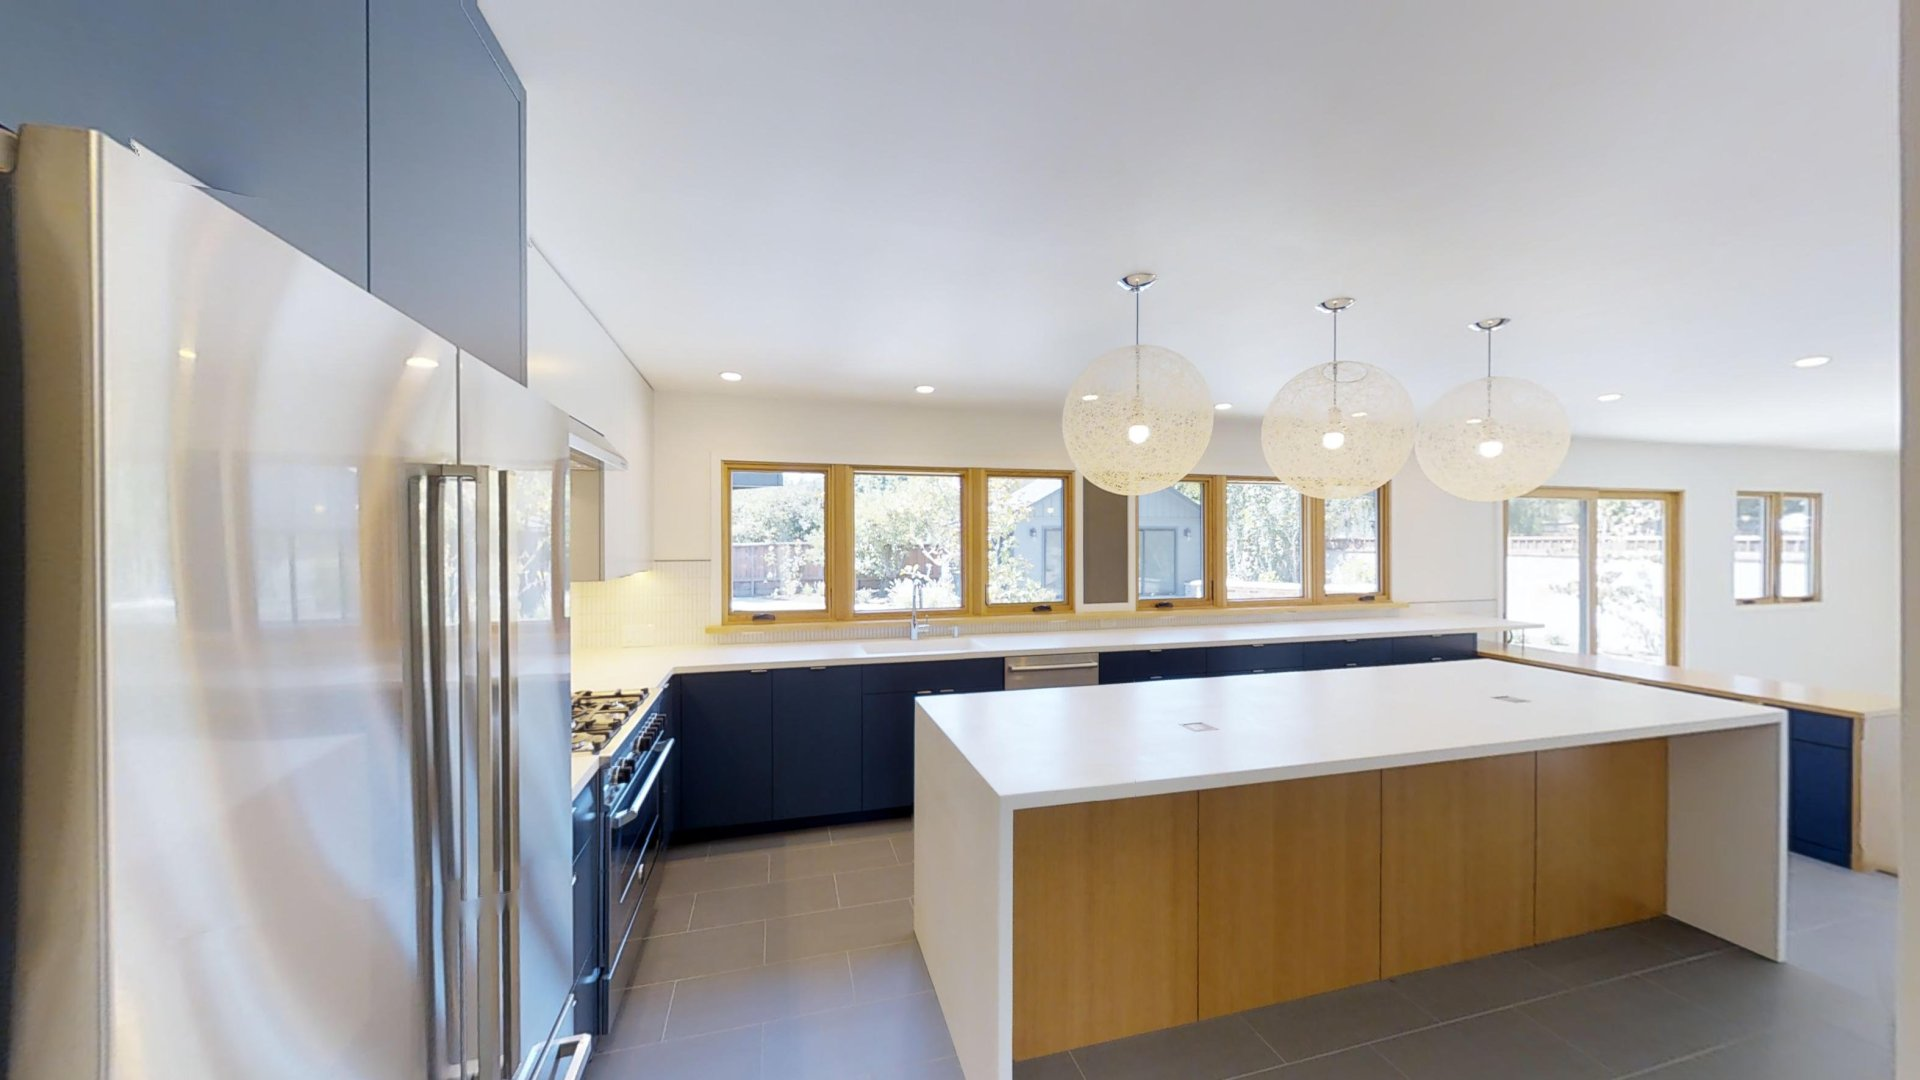 A large white modern kitchen, like one you might find in a property managed by Alliance for Sonoma County Property Management